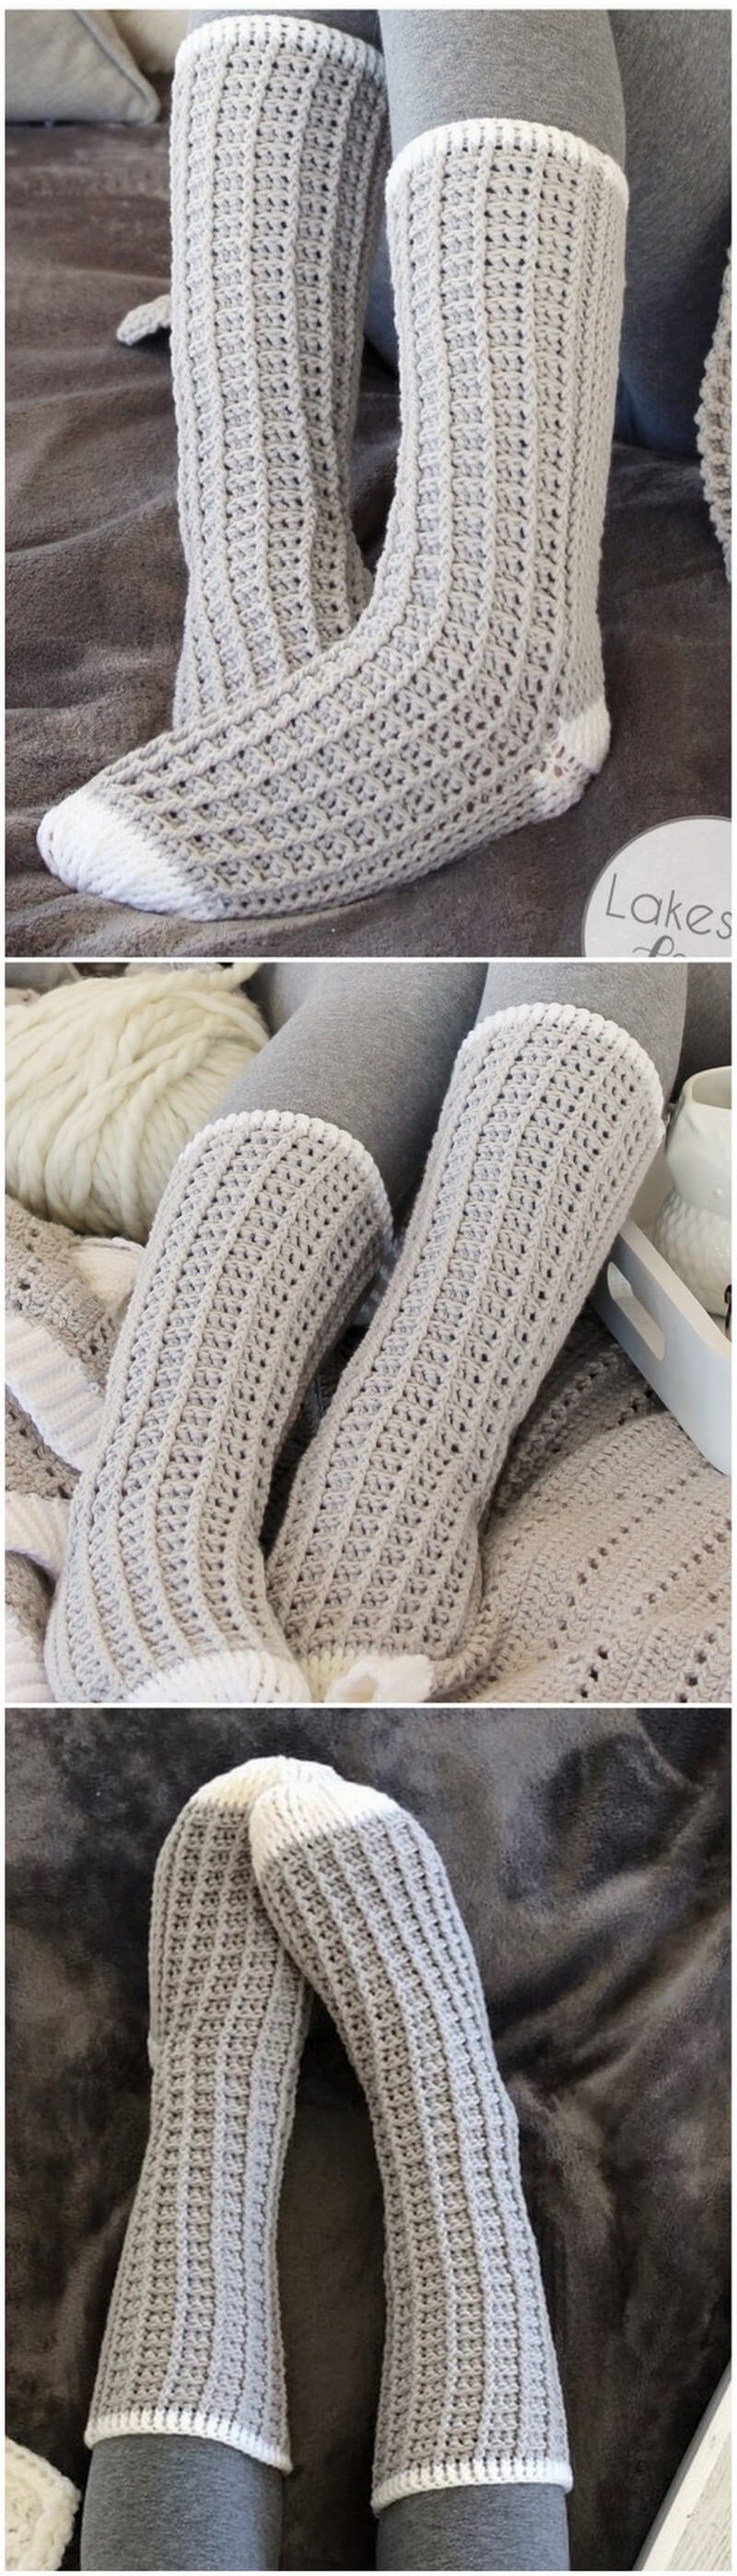 Crochet Slipper Pattern (2)